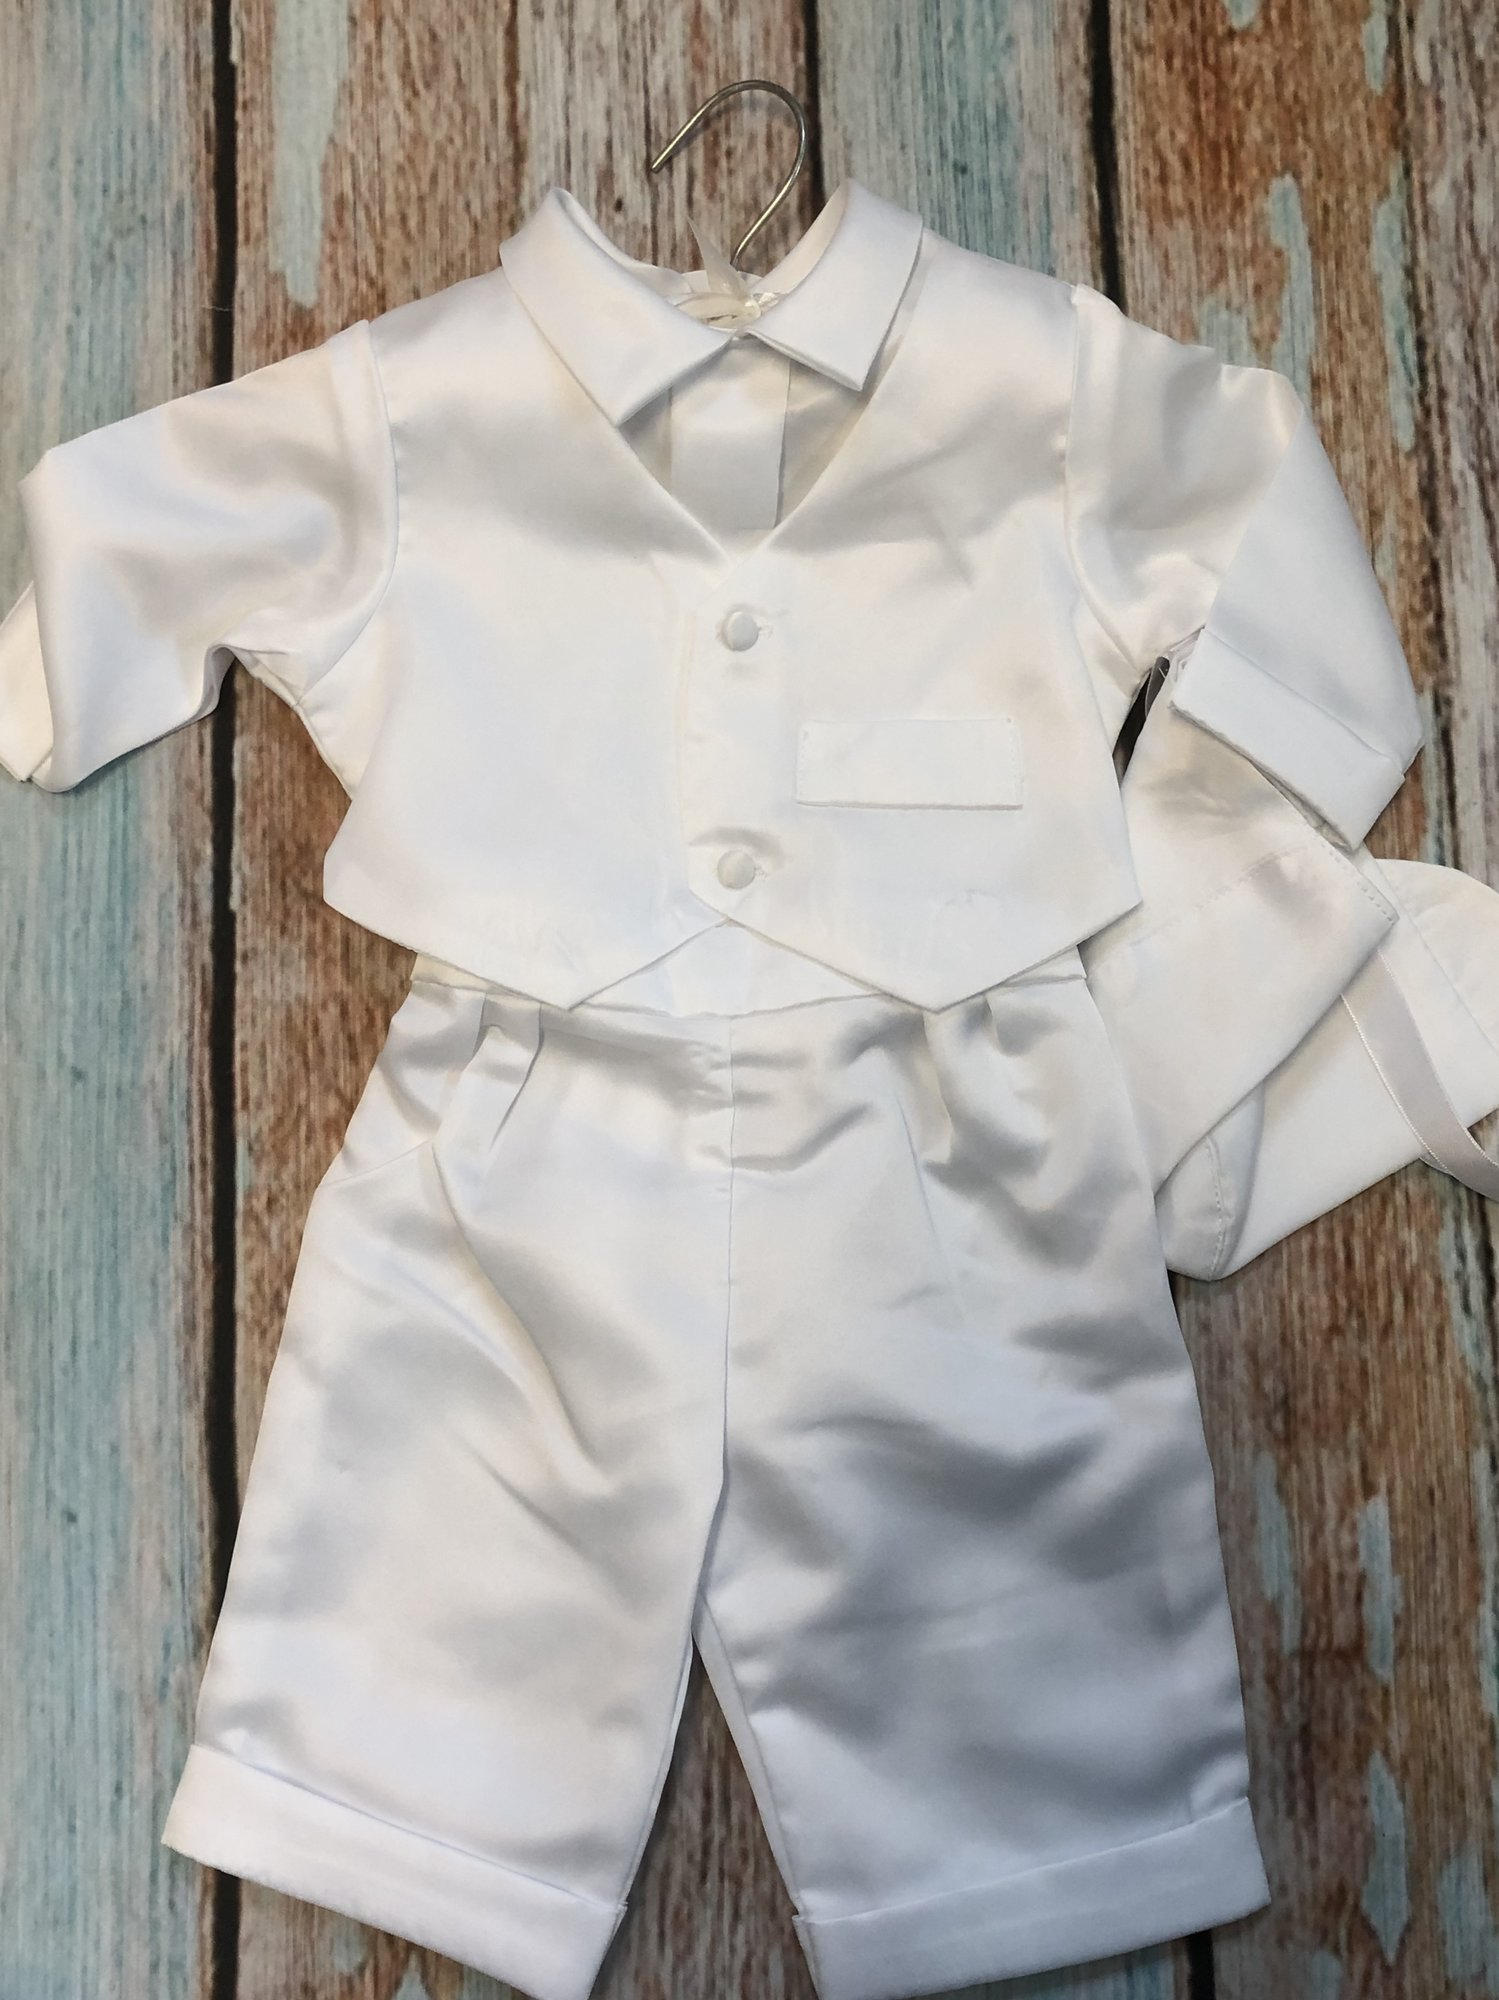 NEW Children's House Christening outfit with hat. This outfit is 3 pieces with the top and bottoms attaching with buttons along with a matching hat.